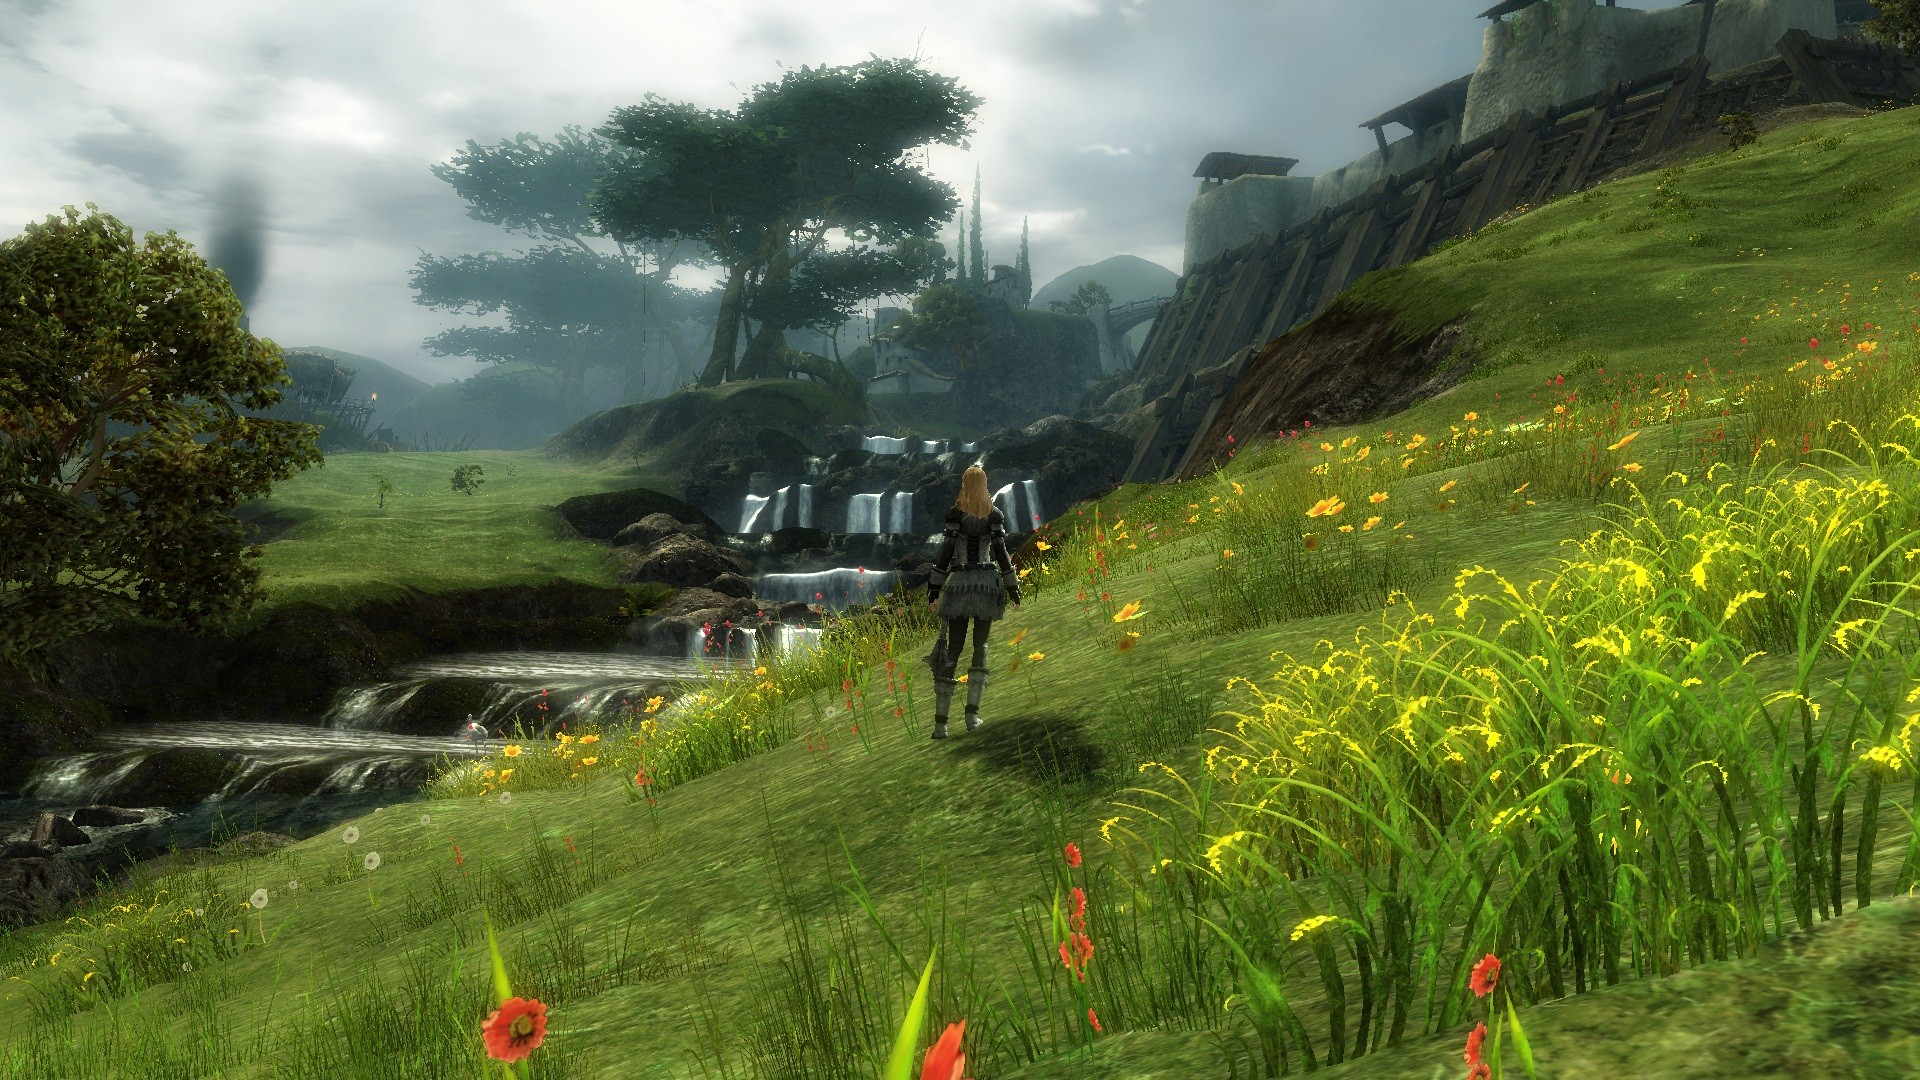 Guild Wars 2 - Exploring found that place